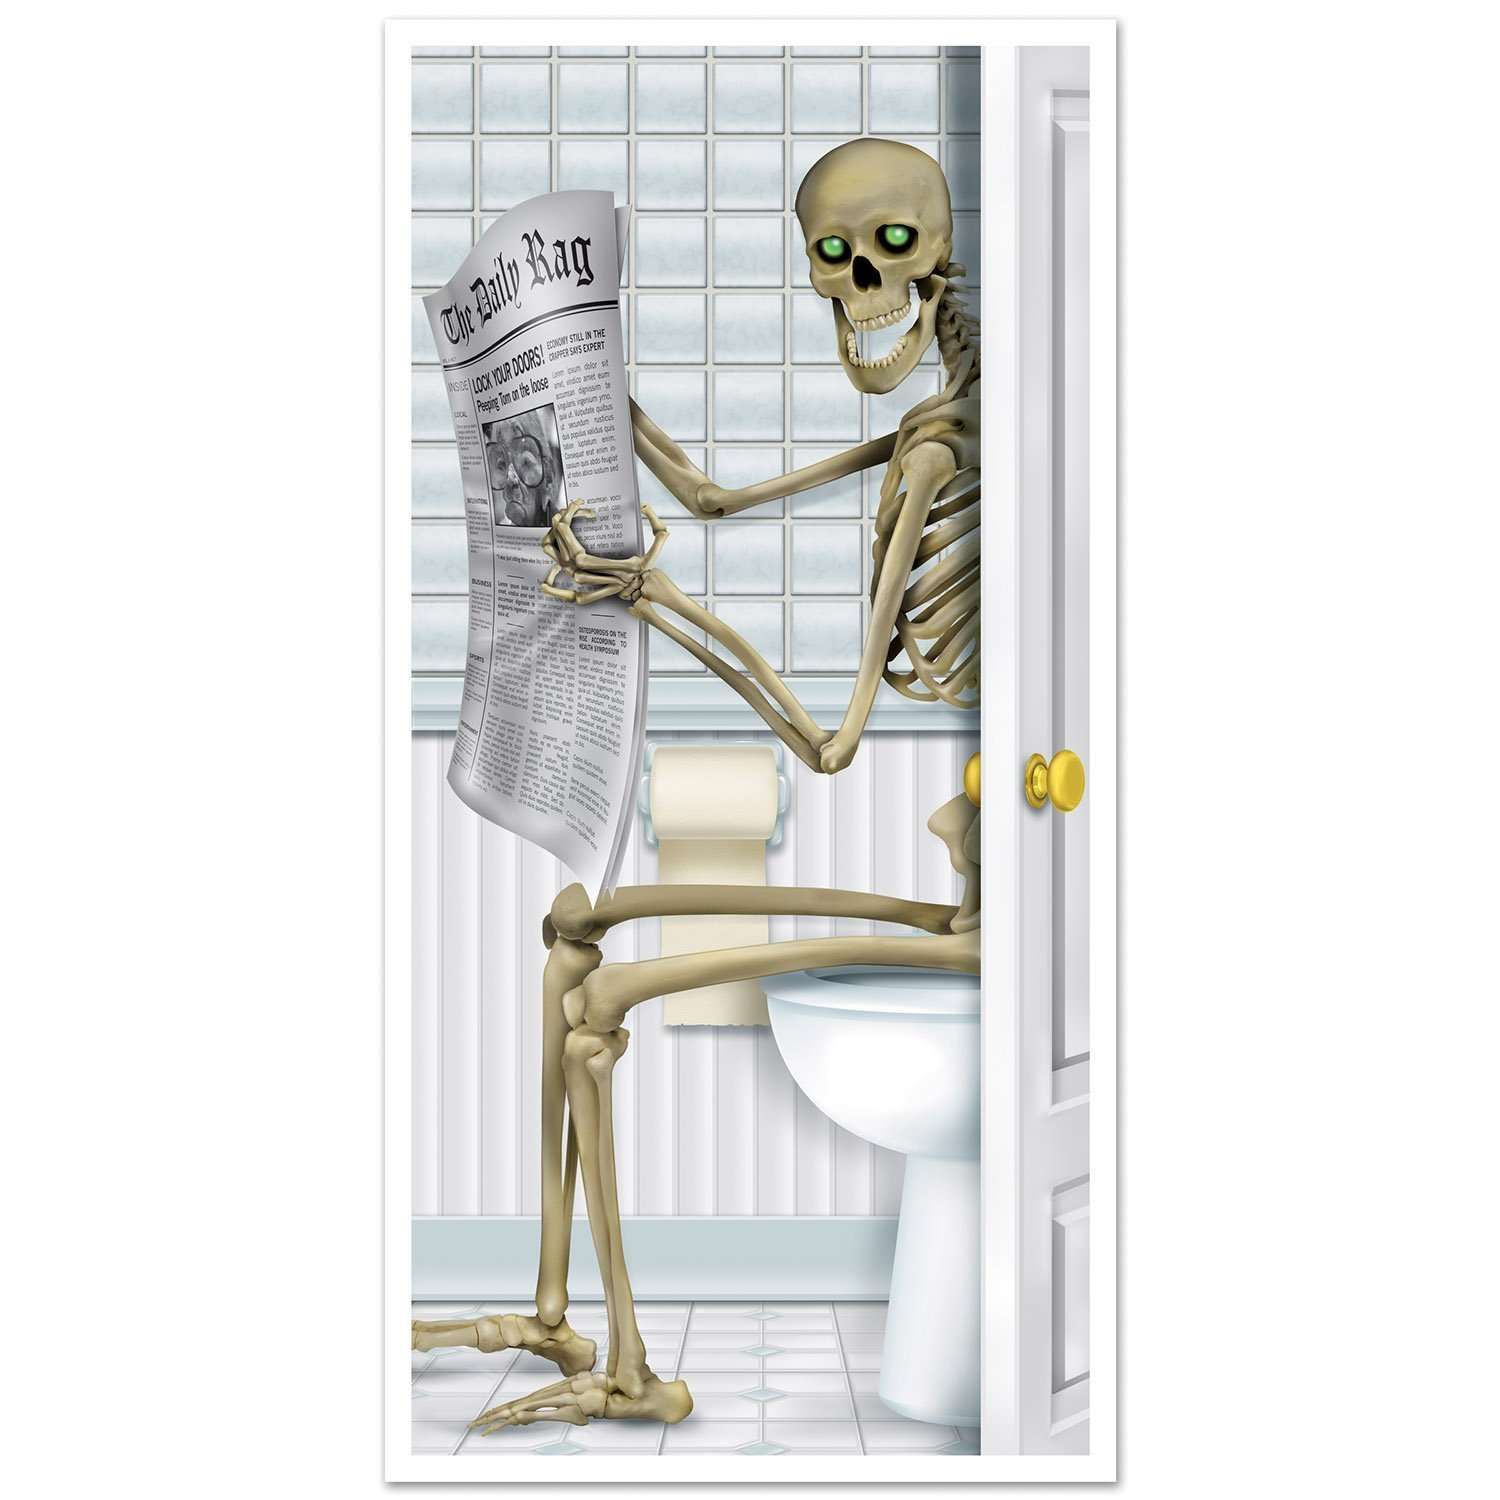 Halloween Party Decorations Accessory Skeleton Zombie Restroom Door Cover Static Sticker Clings Decal Supplies Yusongirl